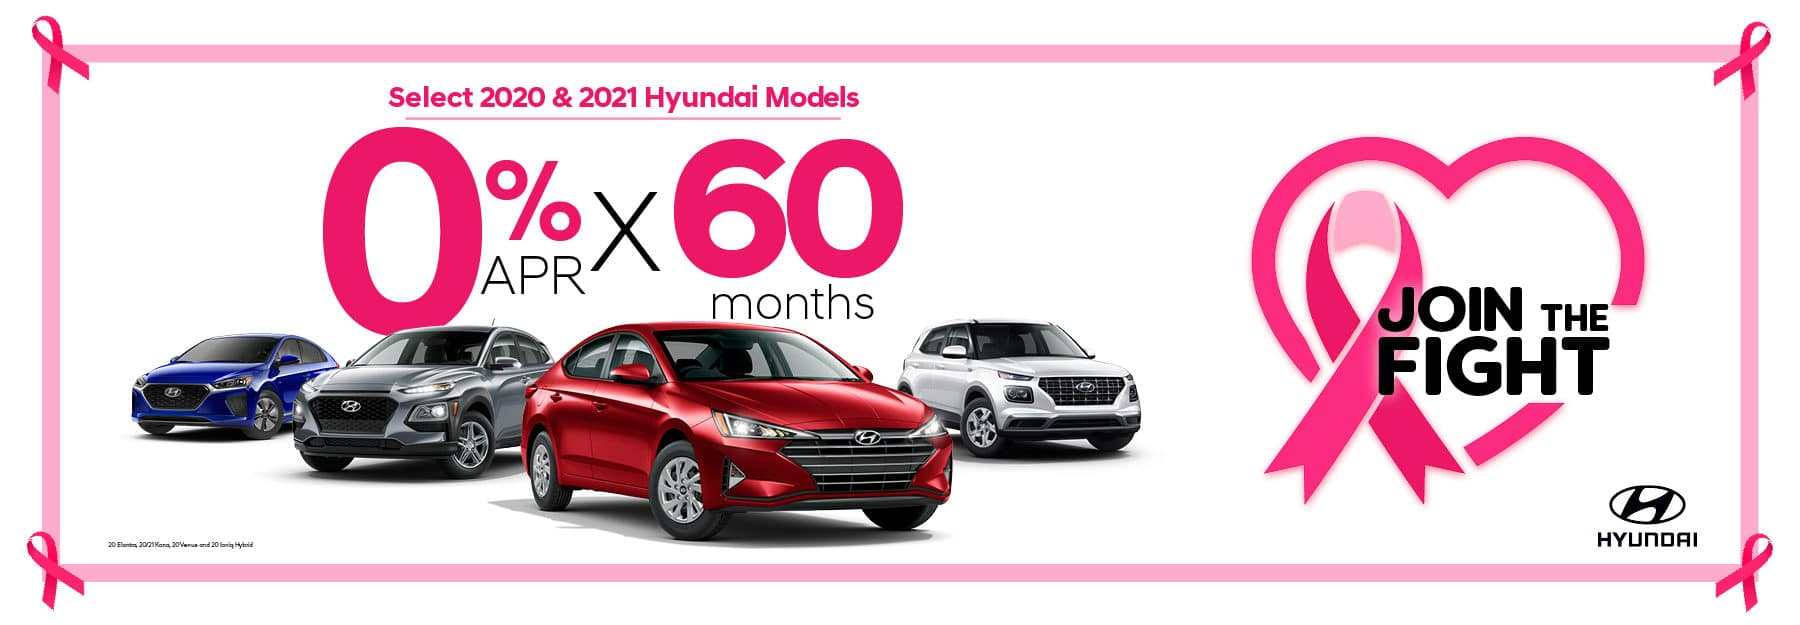 0% APR by 60 months on Select Hyundai Models